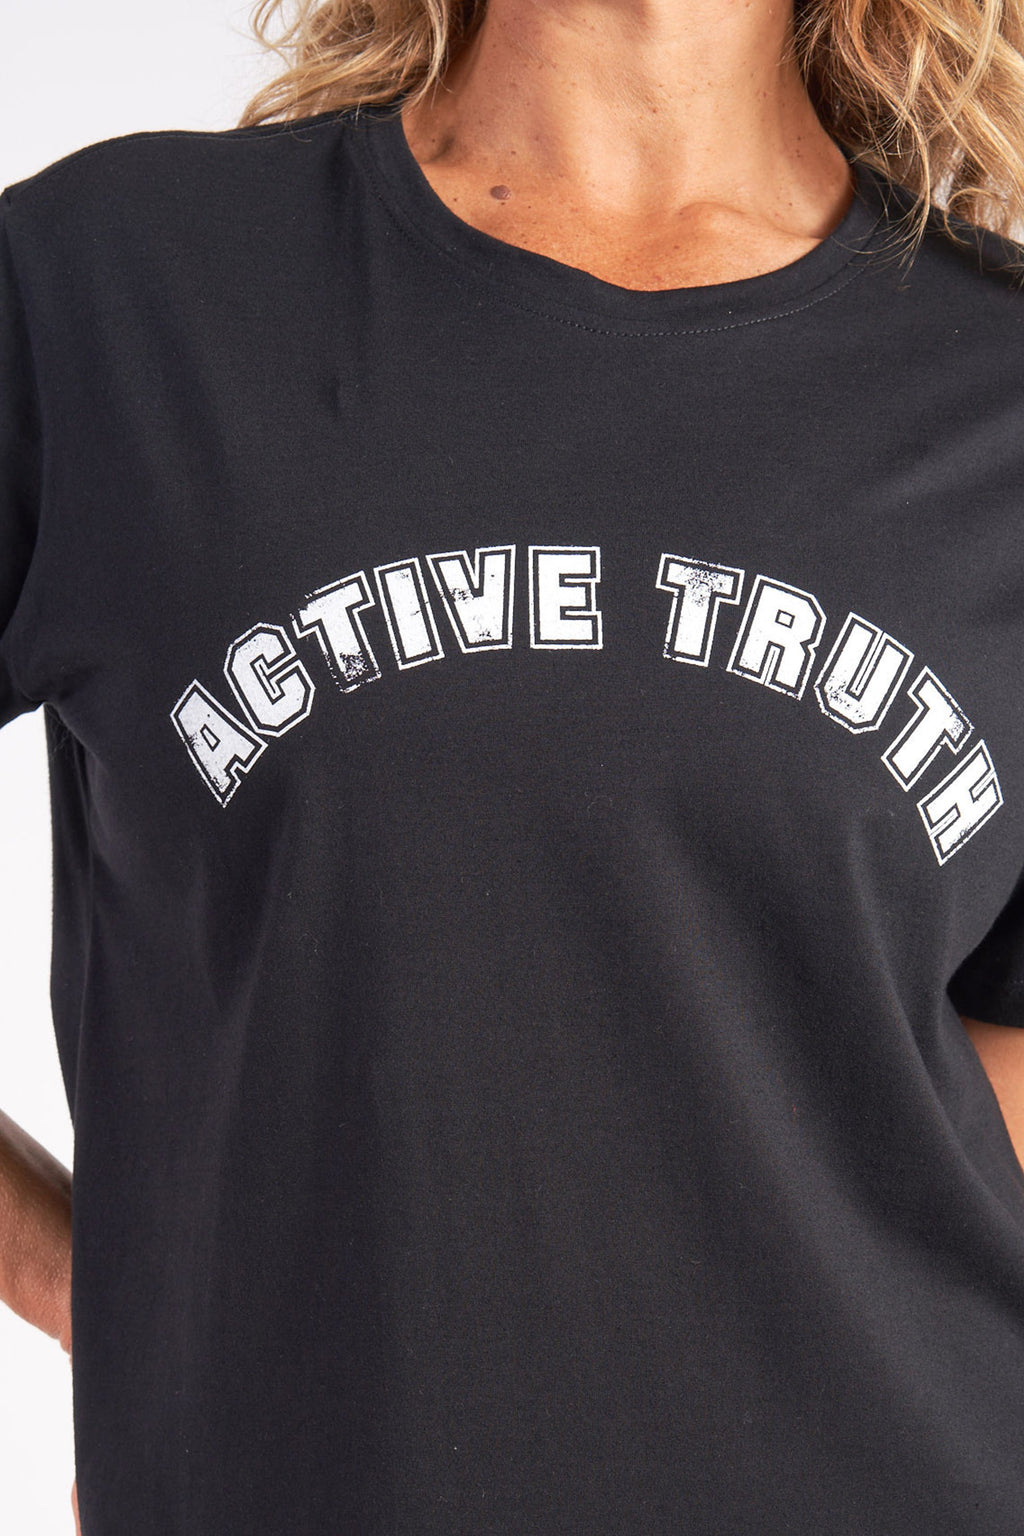 activewear-relaxed-crew-tee-organic-cotton-black-large-front